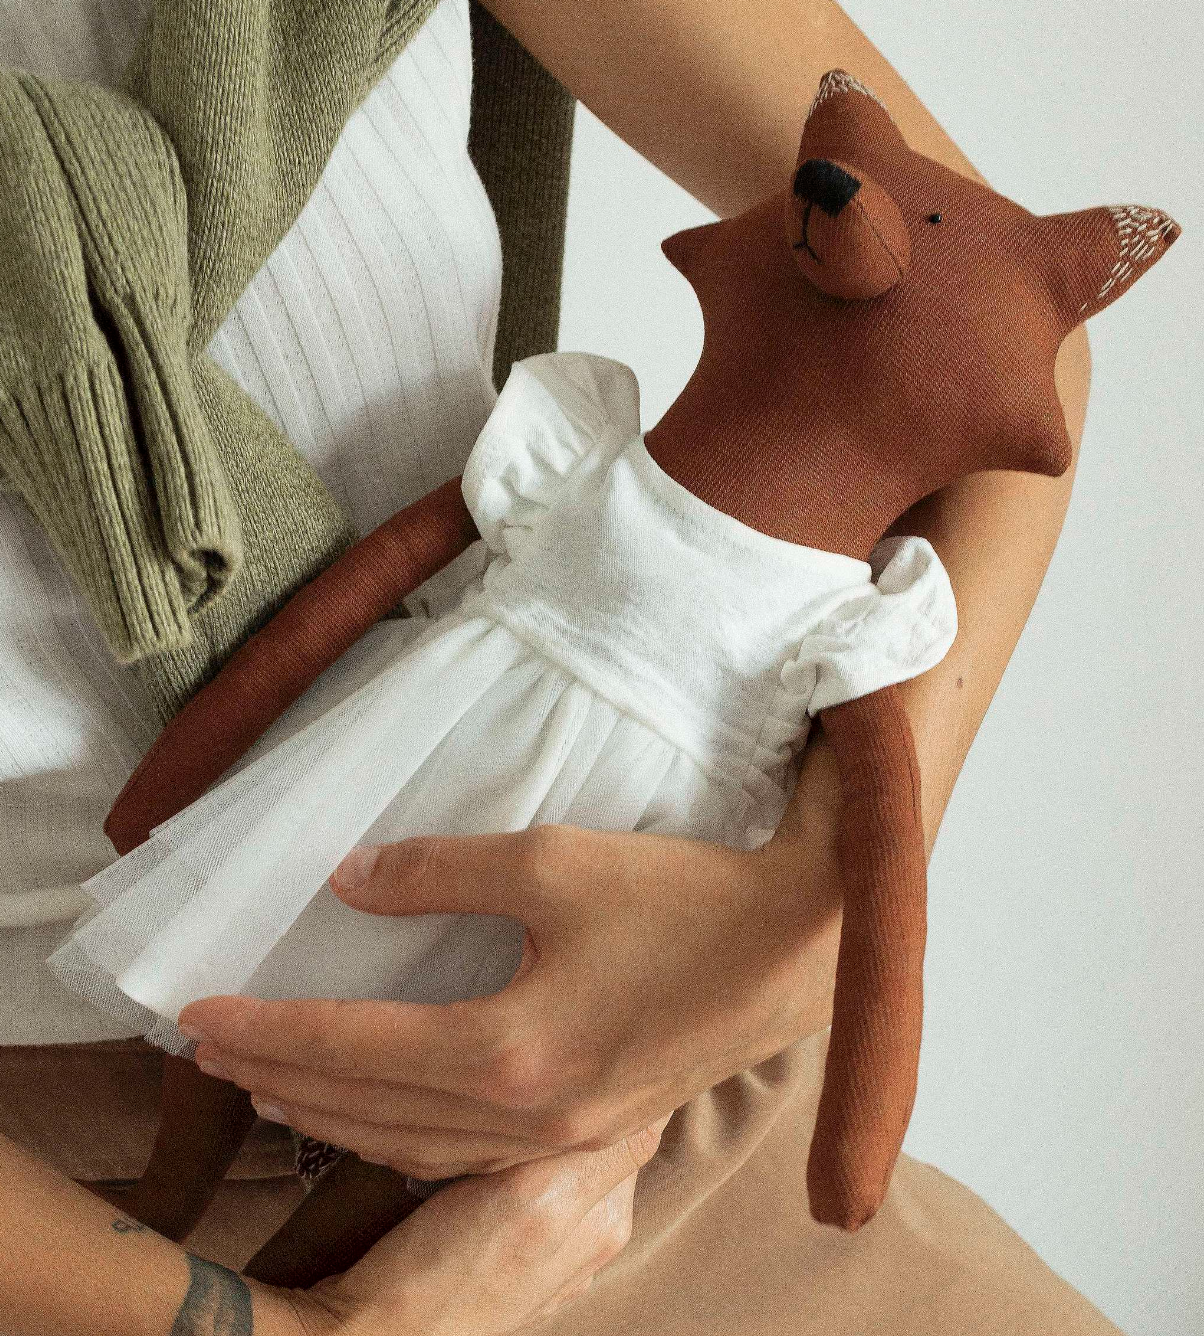 Philomena kloss - Joan the fox -